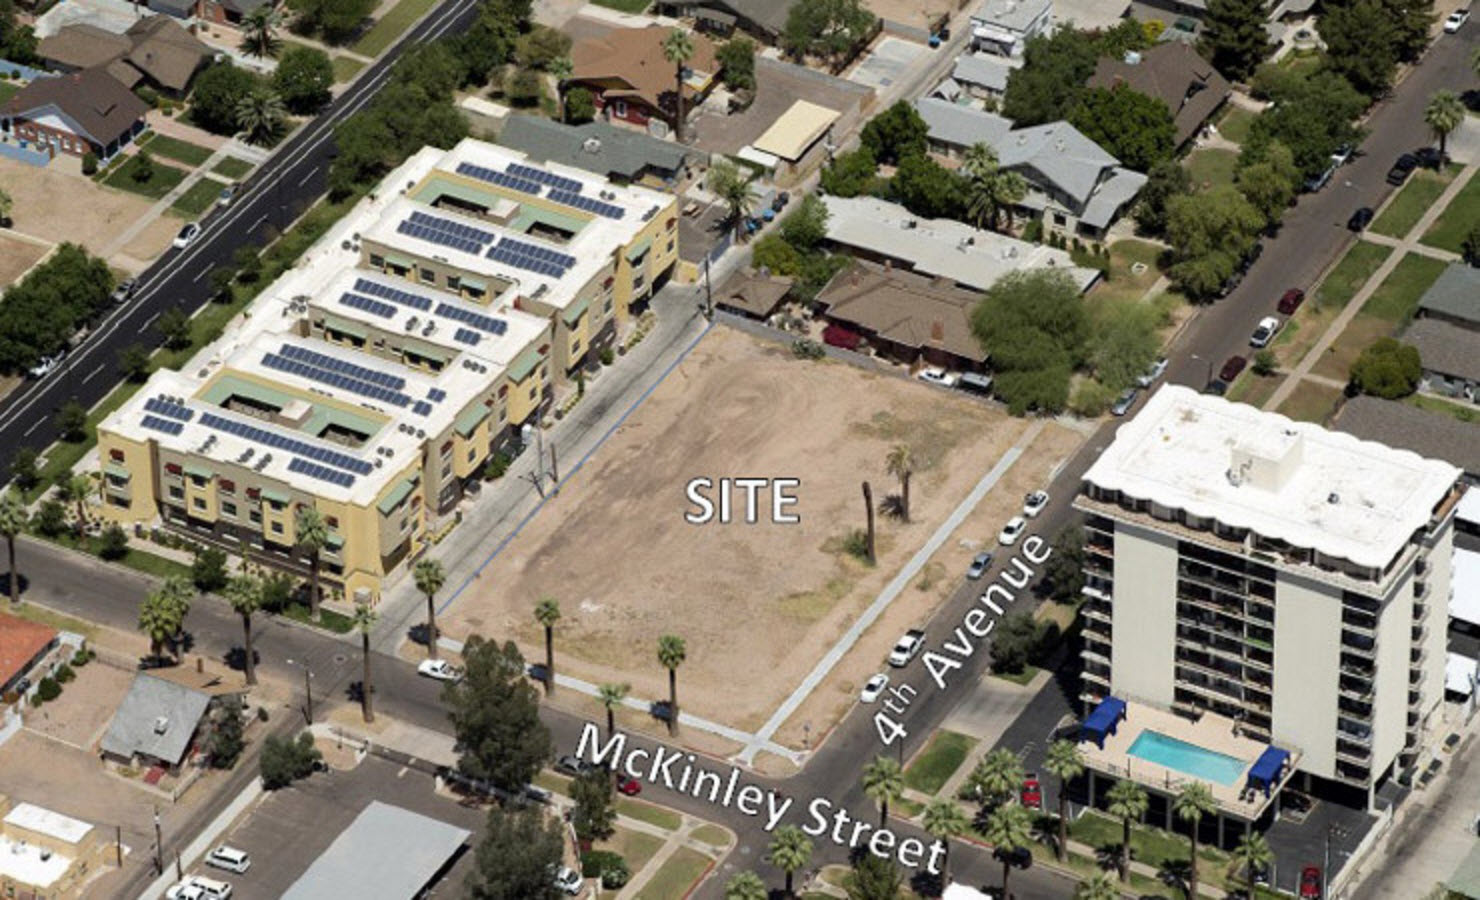 Mckinley row site